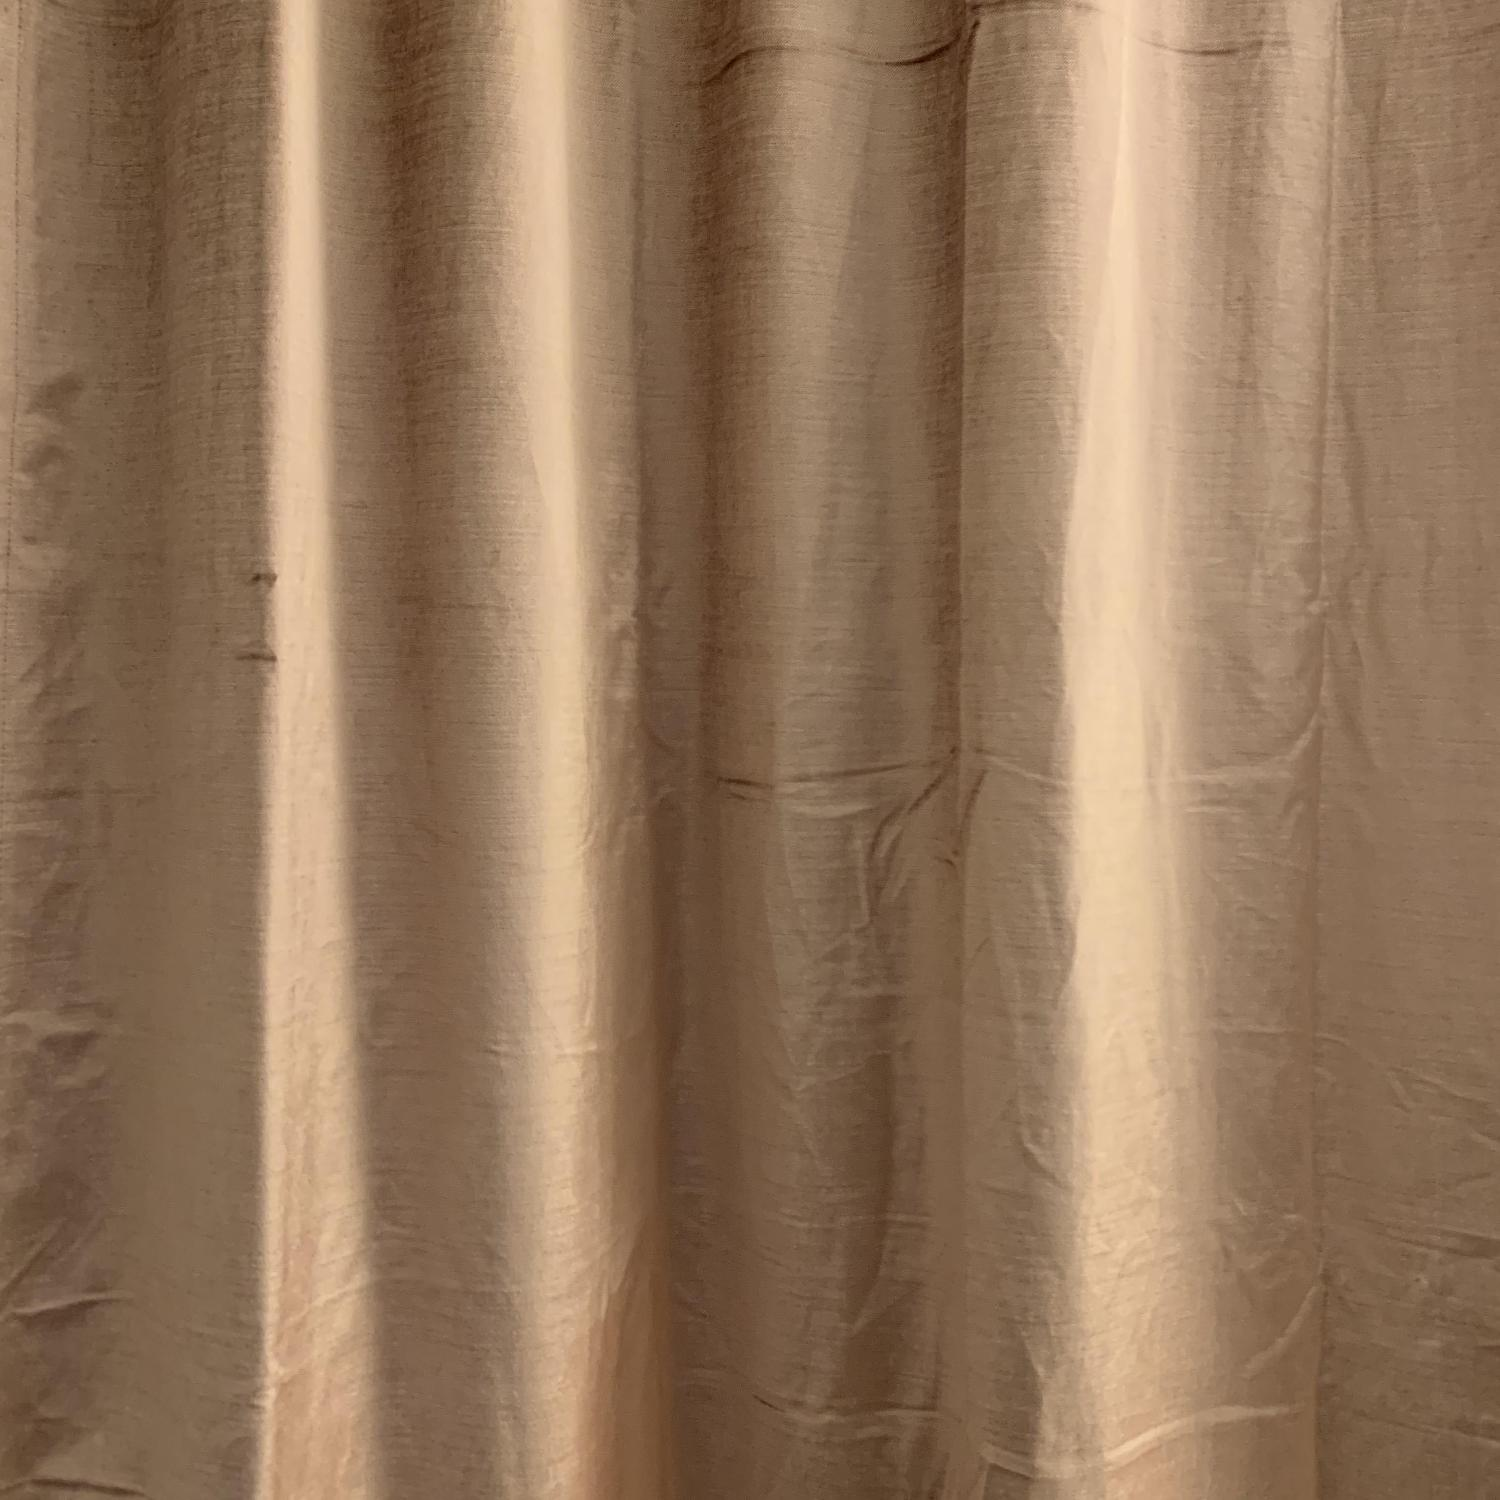 West Elm Cotton Luster Velvet Curtains in Dusty Blush-1